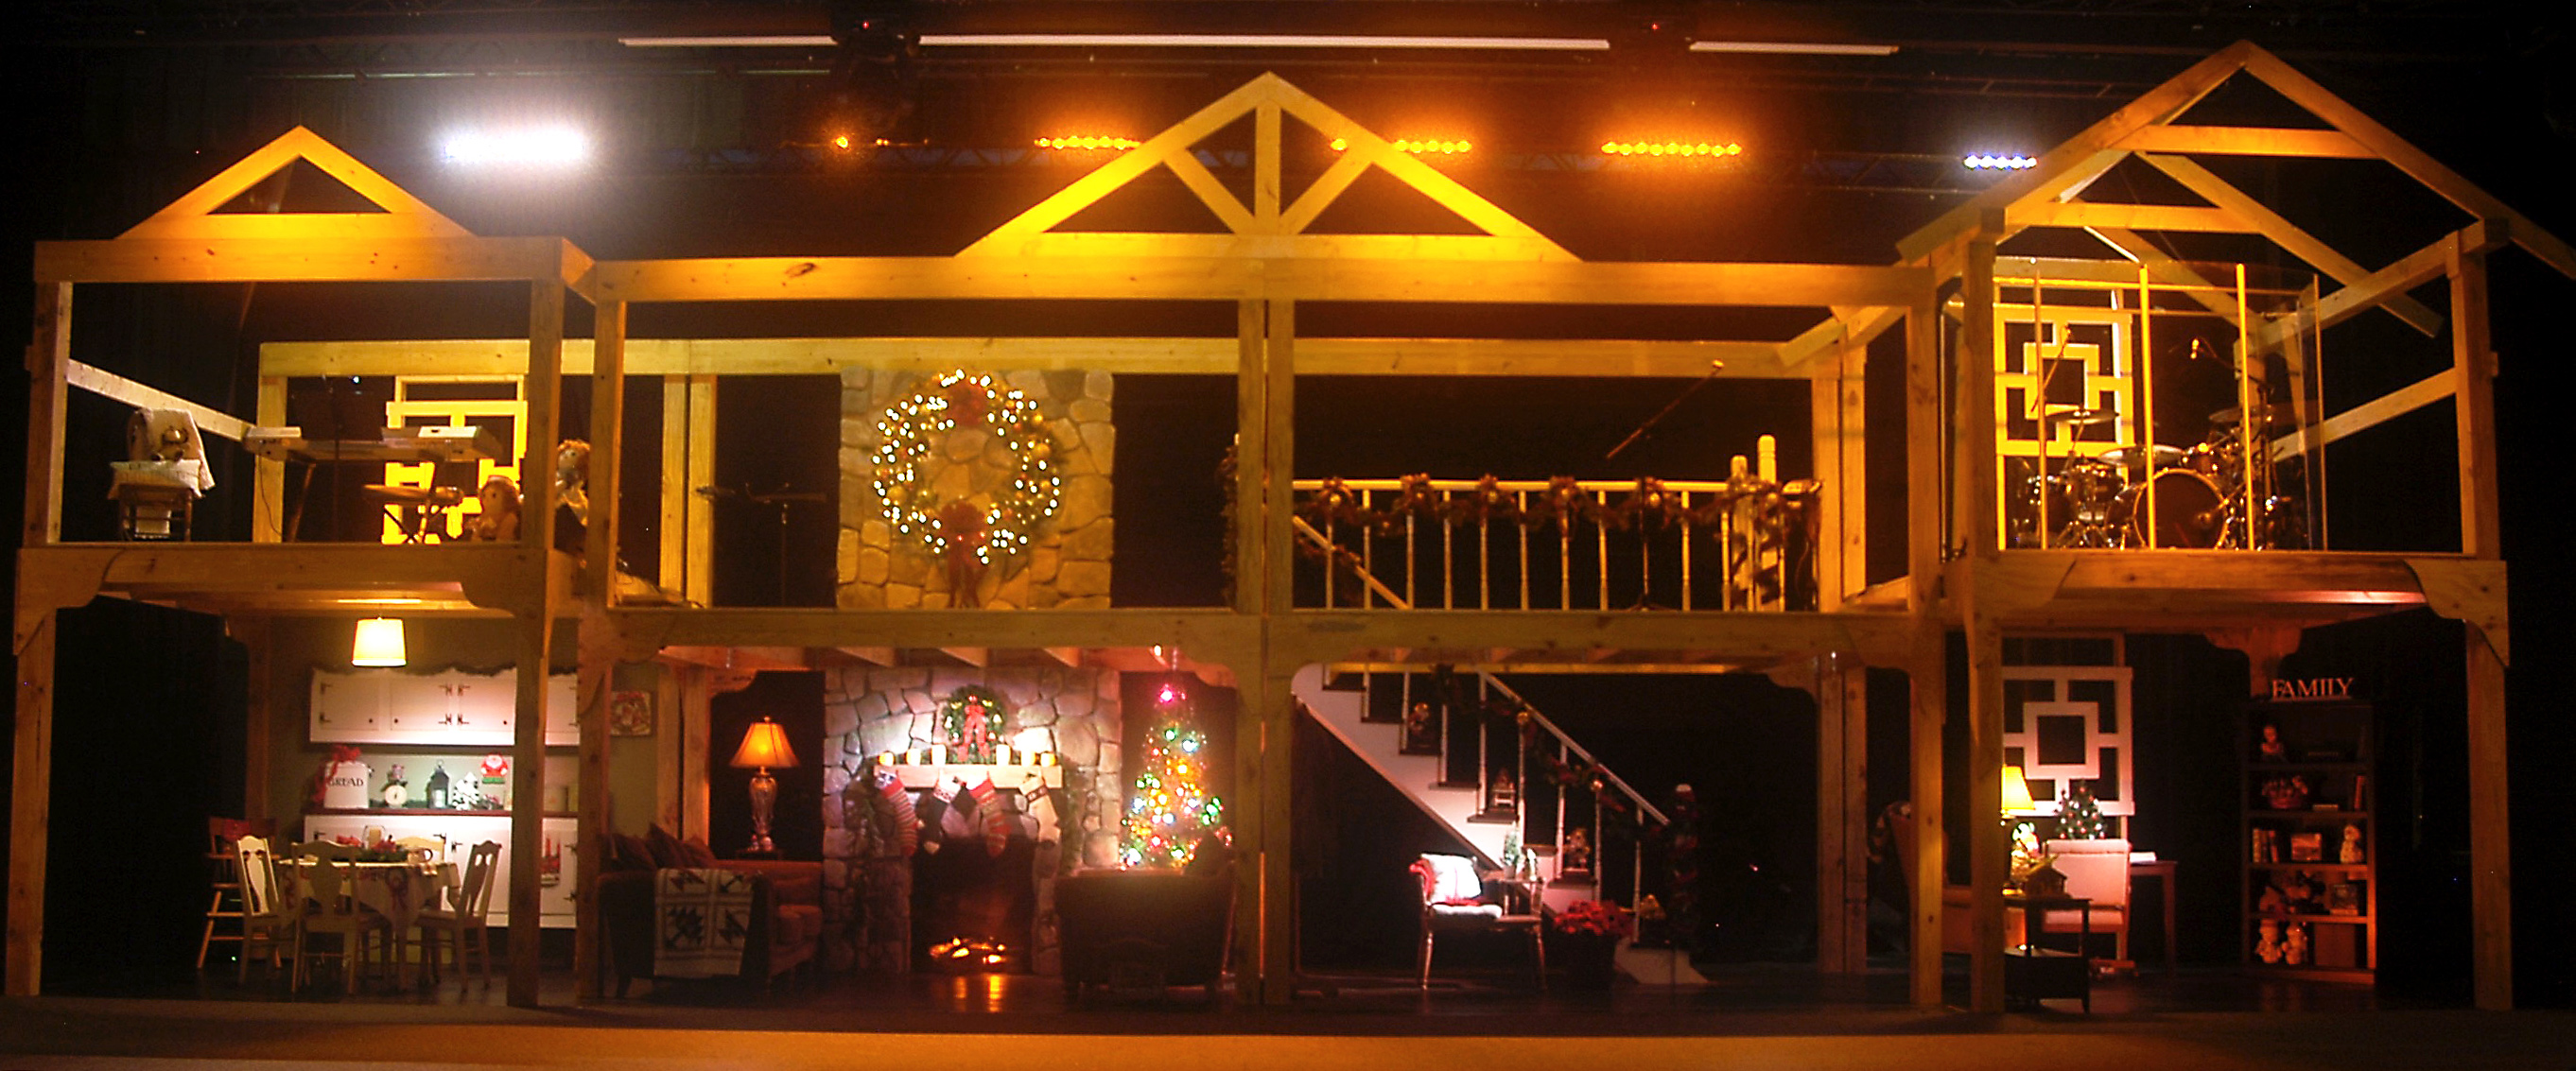 The Dollhouse Church Stage Design Ideas